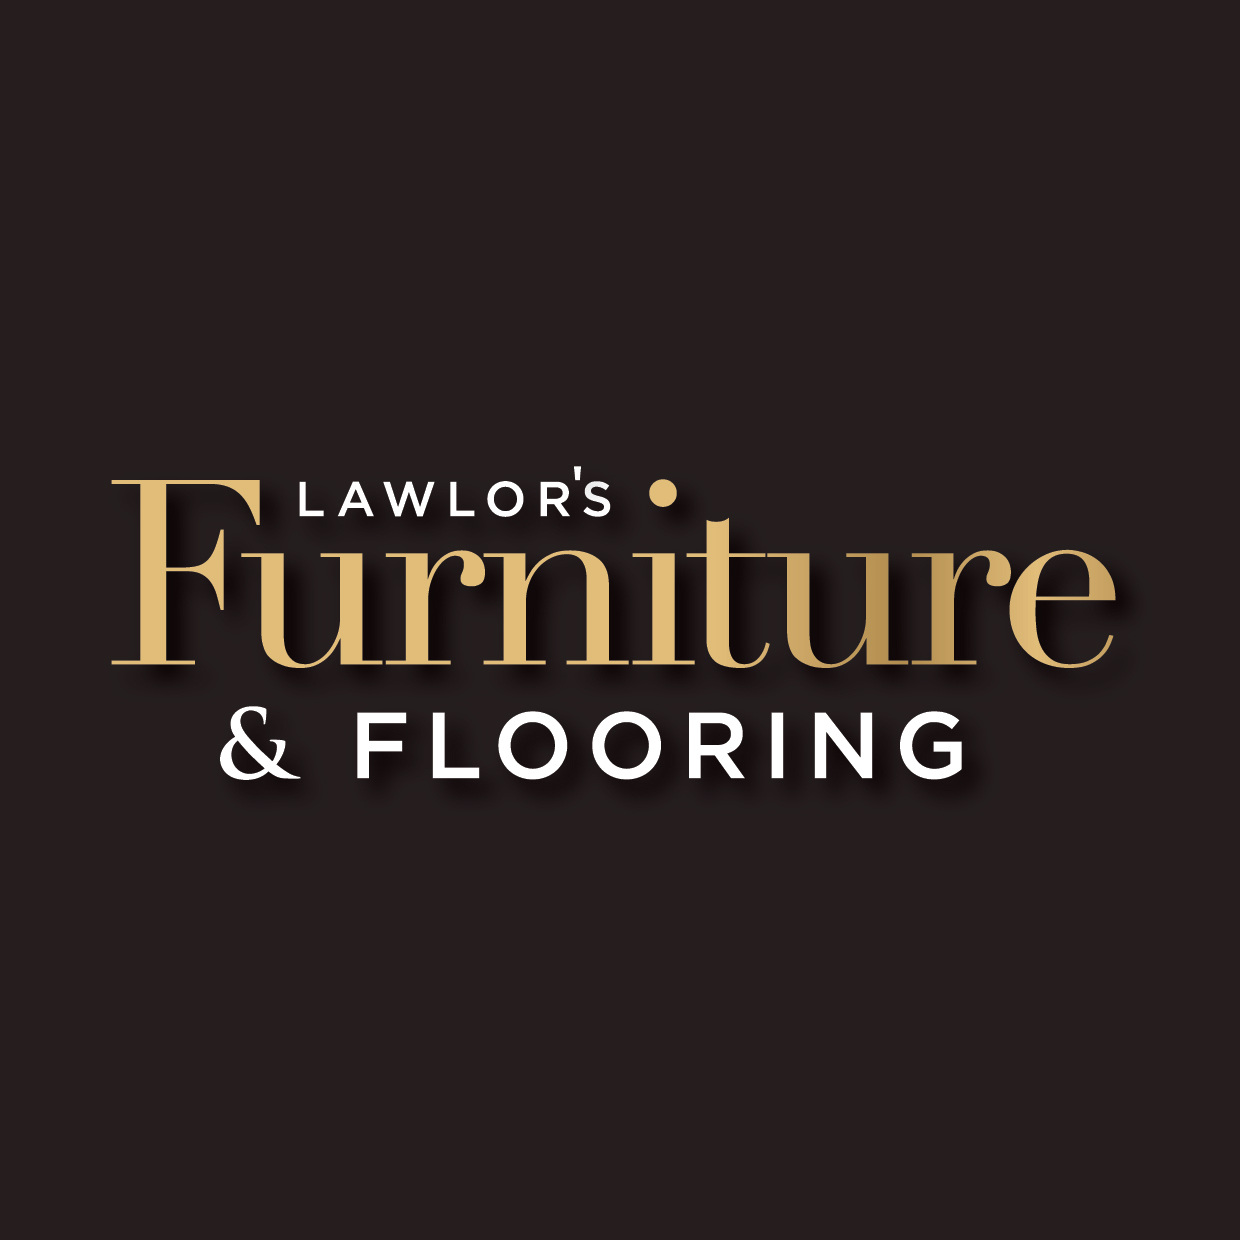 Lawlors Furniture and Flooring Logo